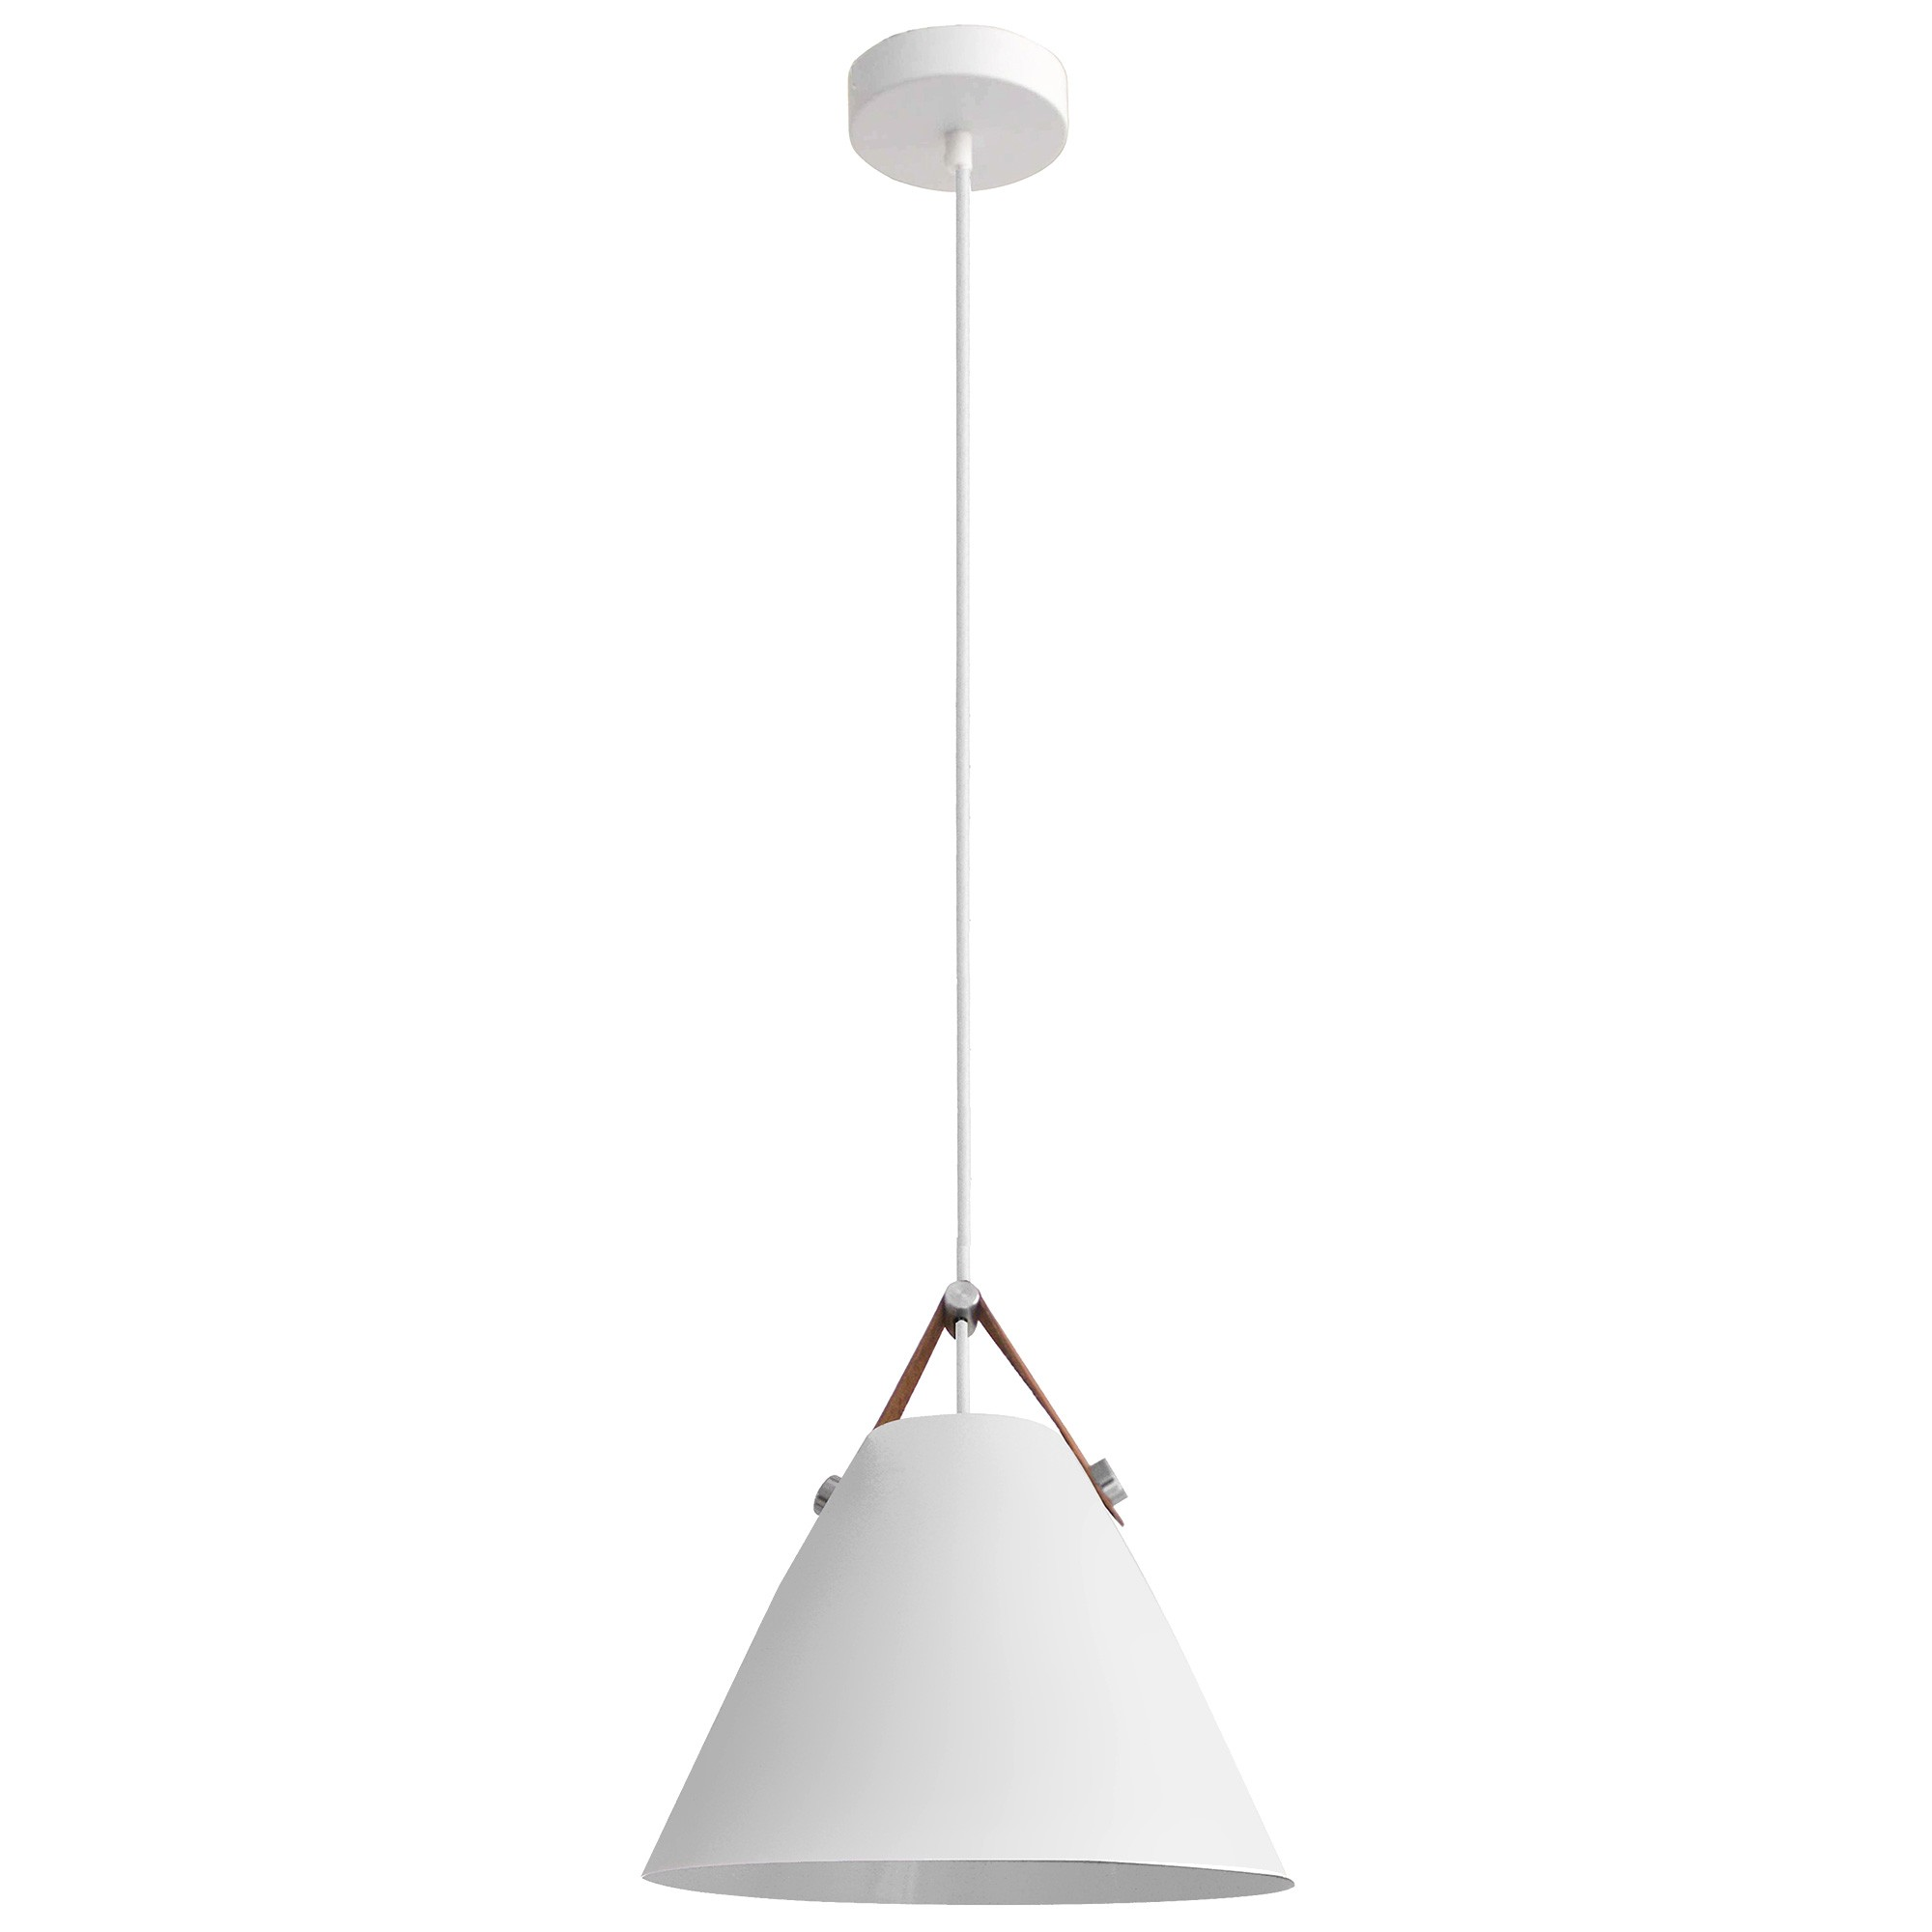 Milano Metal Pendant Light, White